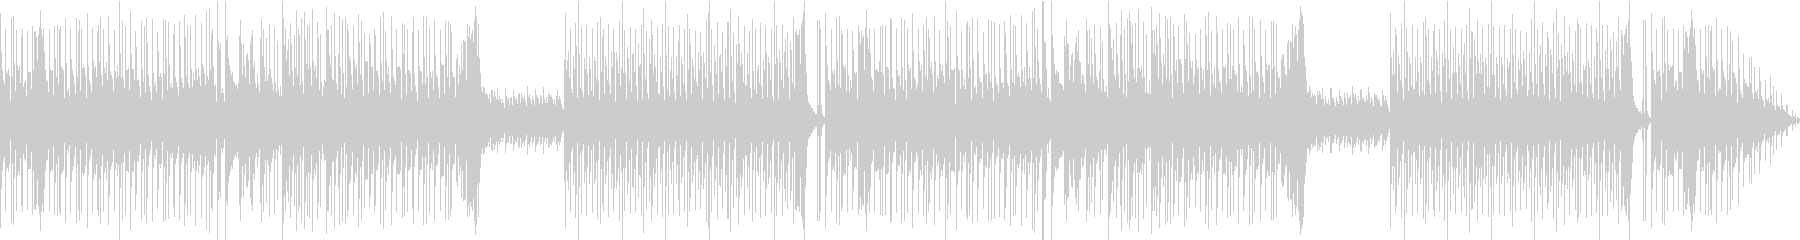 For the appearance scene of comical villains, etc.'s unreproduced waveform